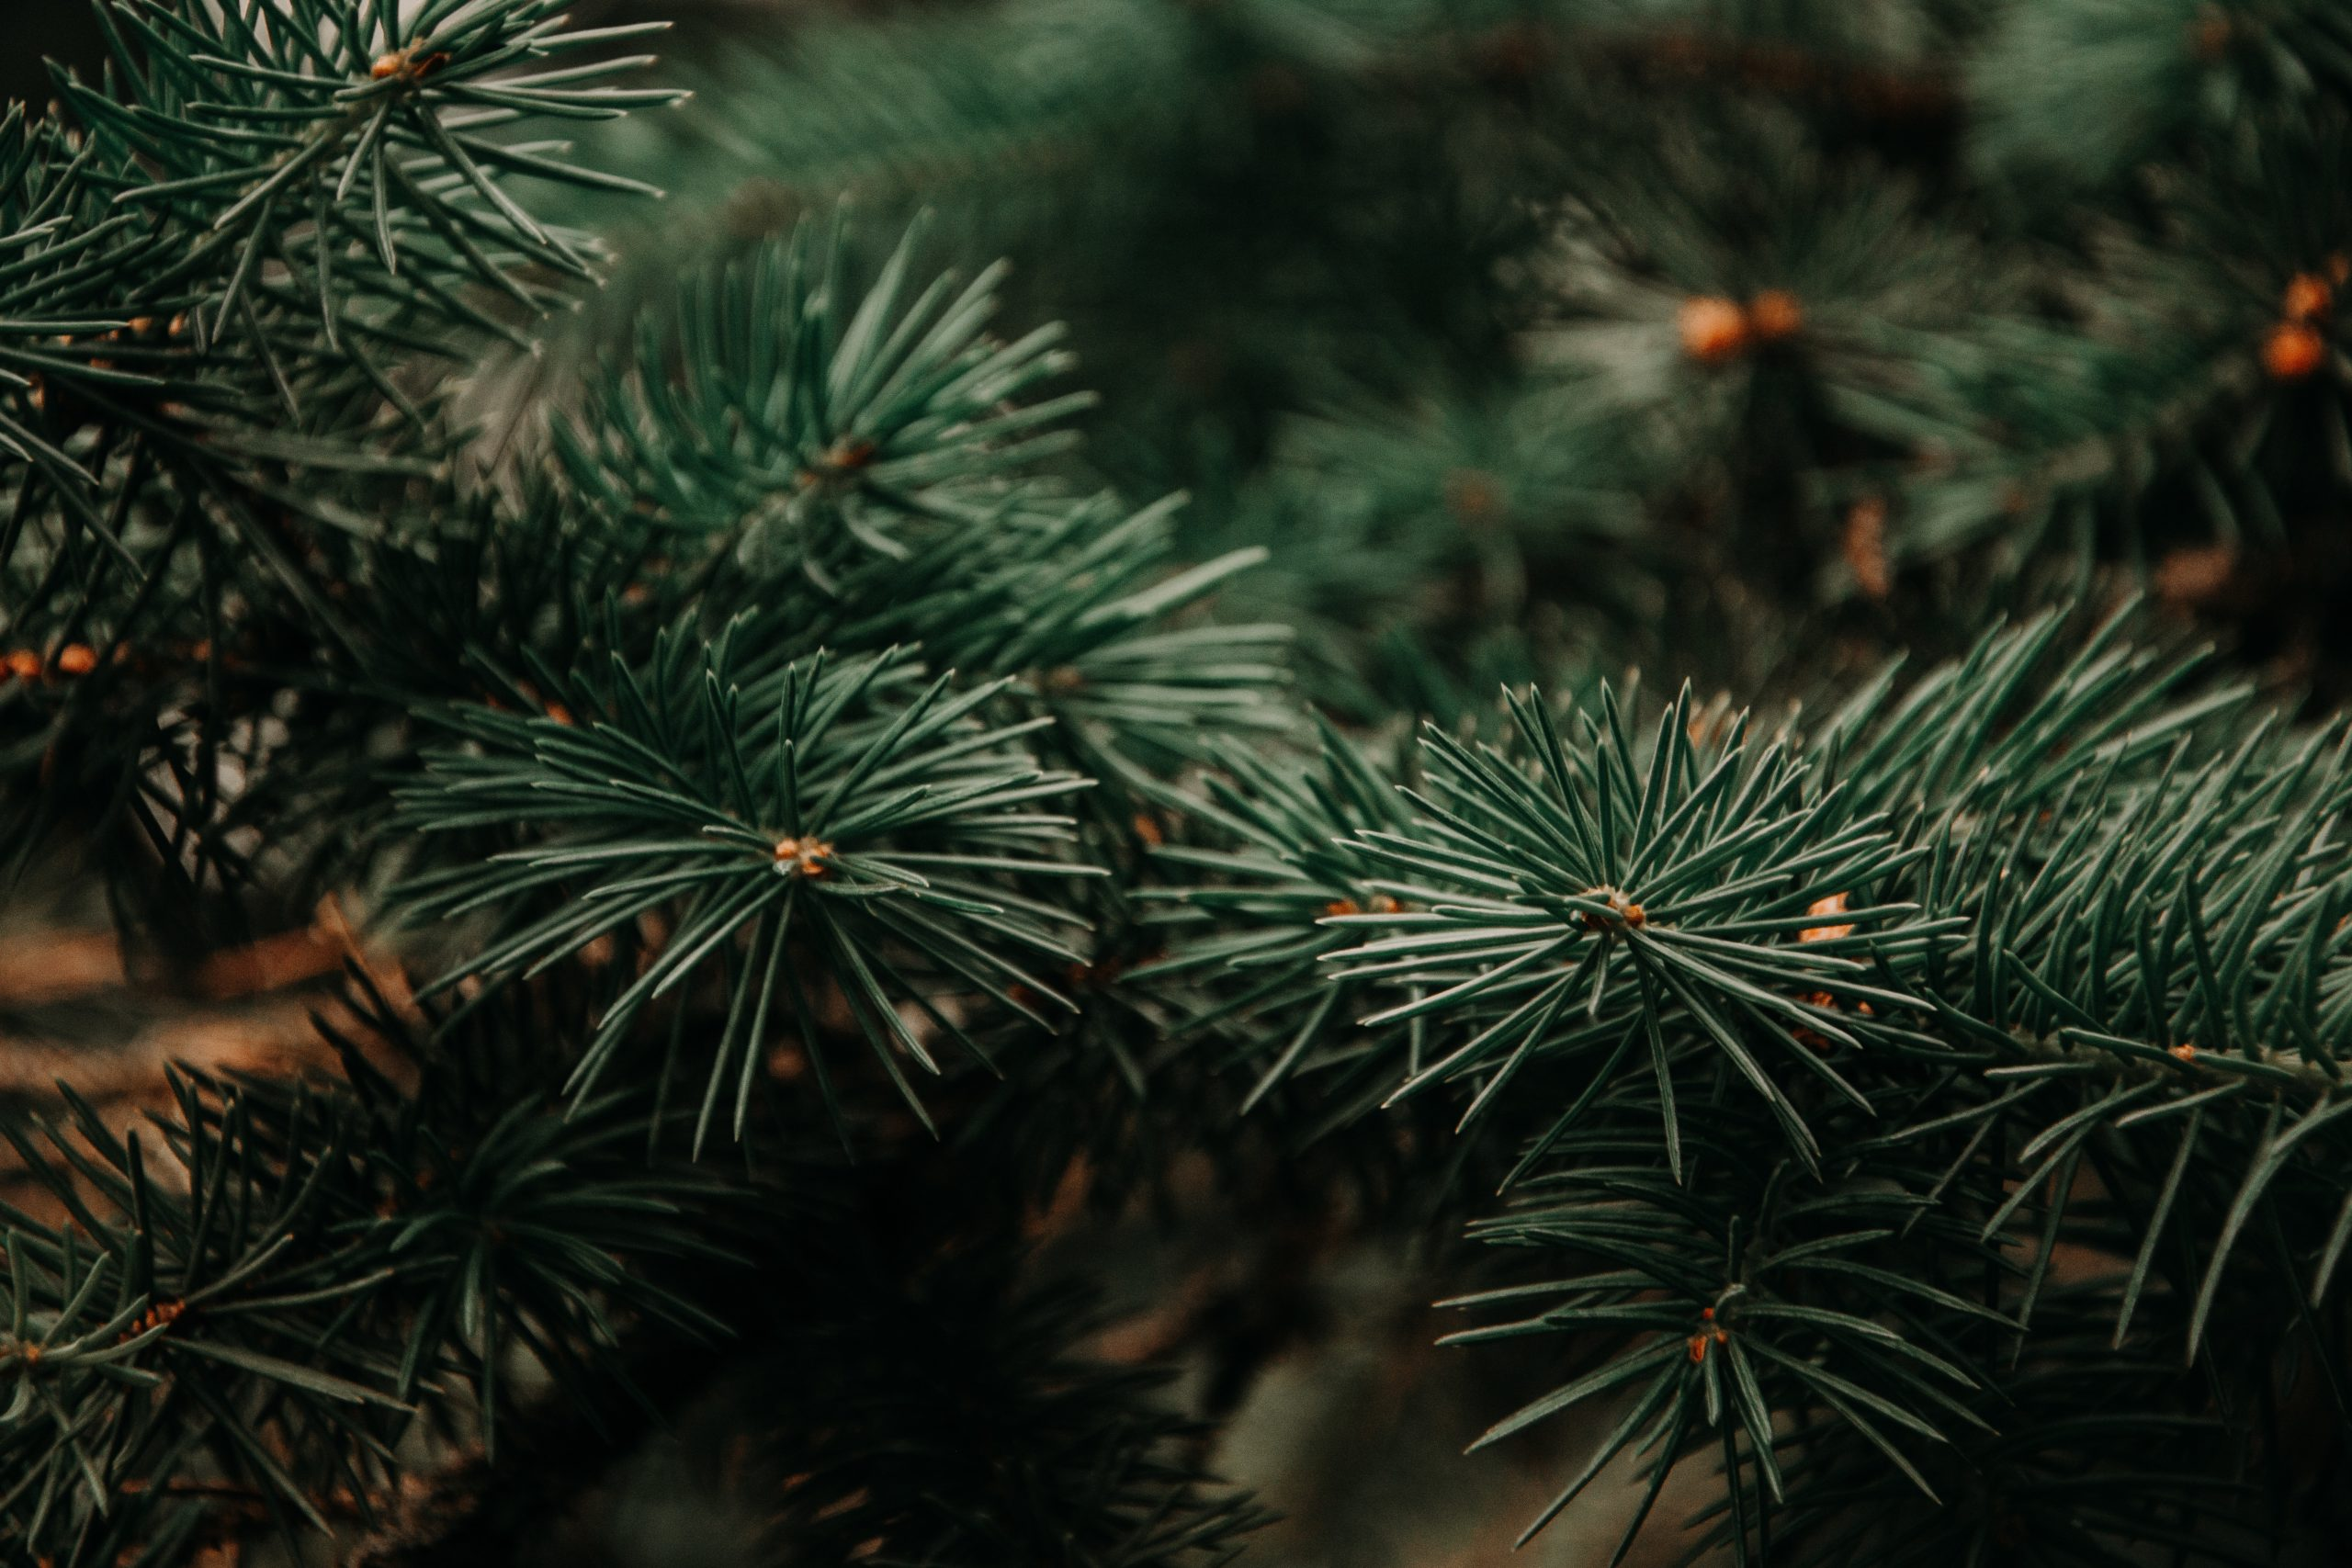 Close up of pine branches and needles